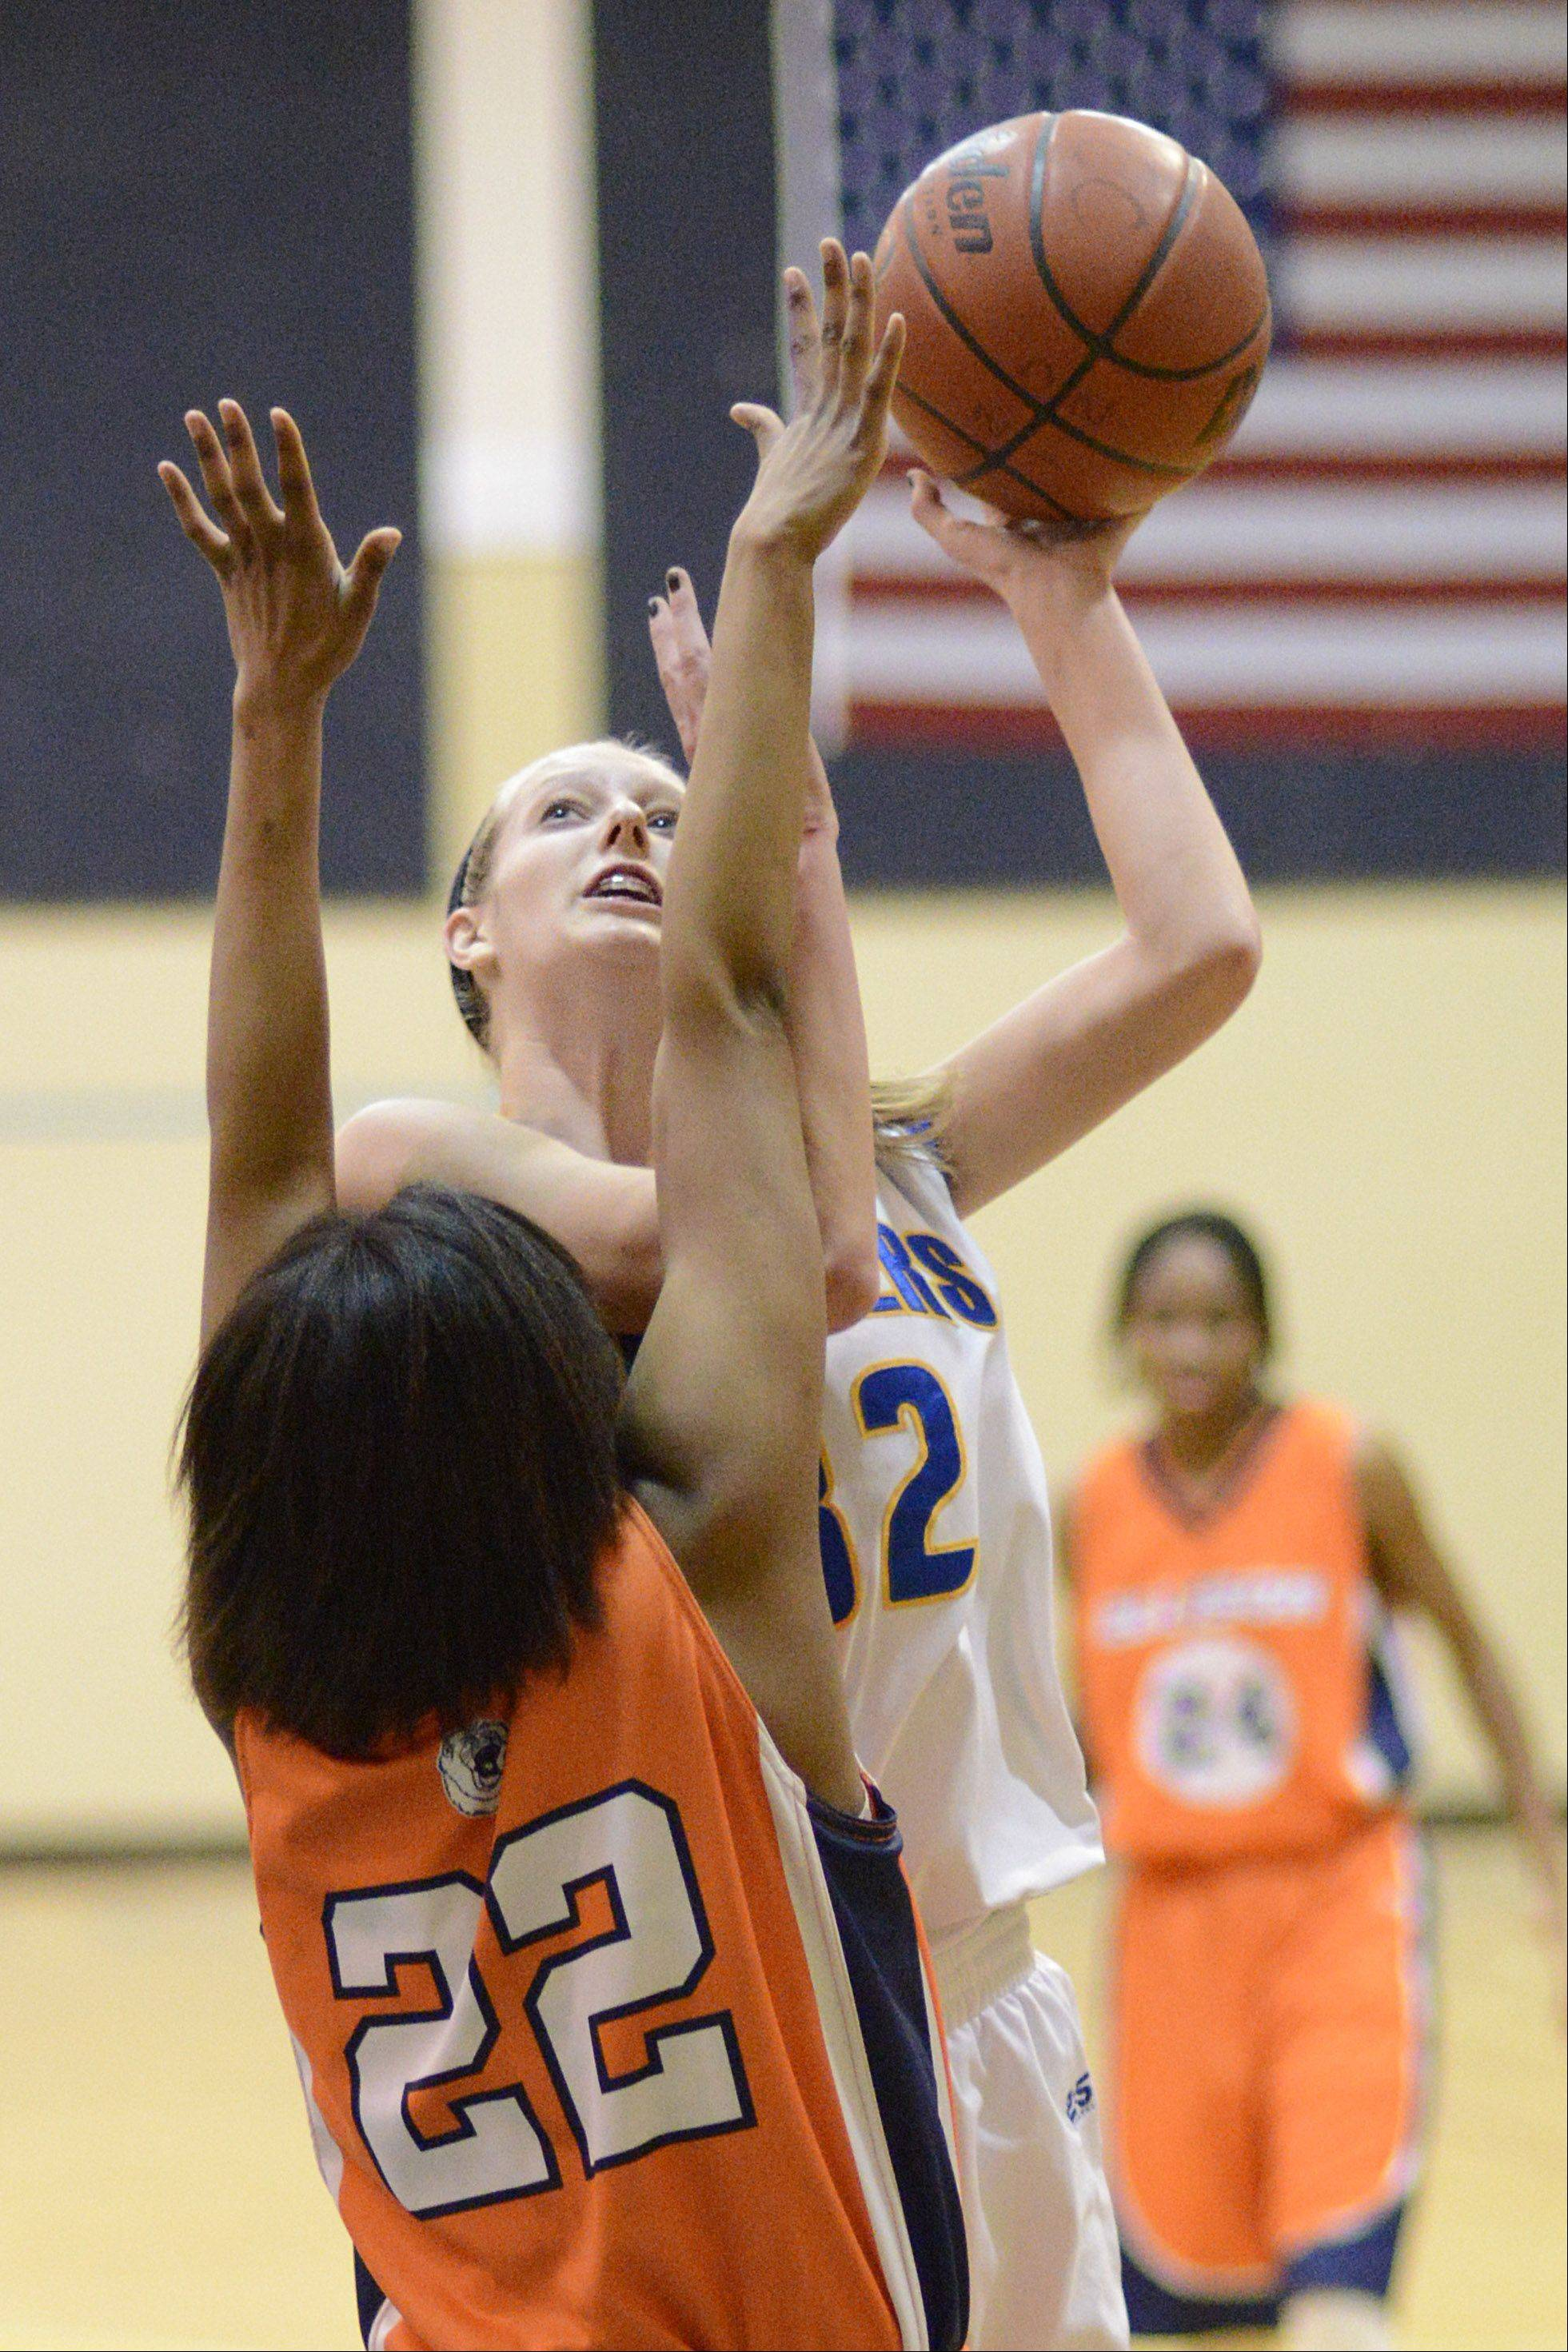 Aurora Central Catholic's Alex Horton shoots over CICS Ellison's Briana Stamps in the second quarter.